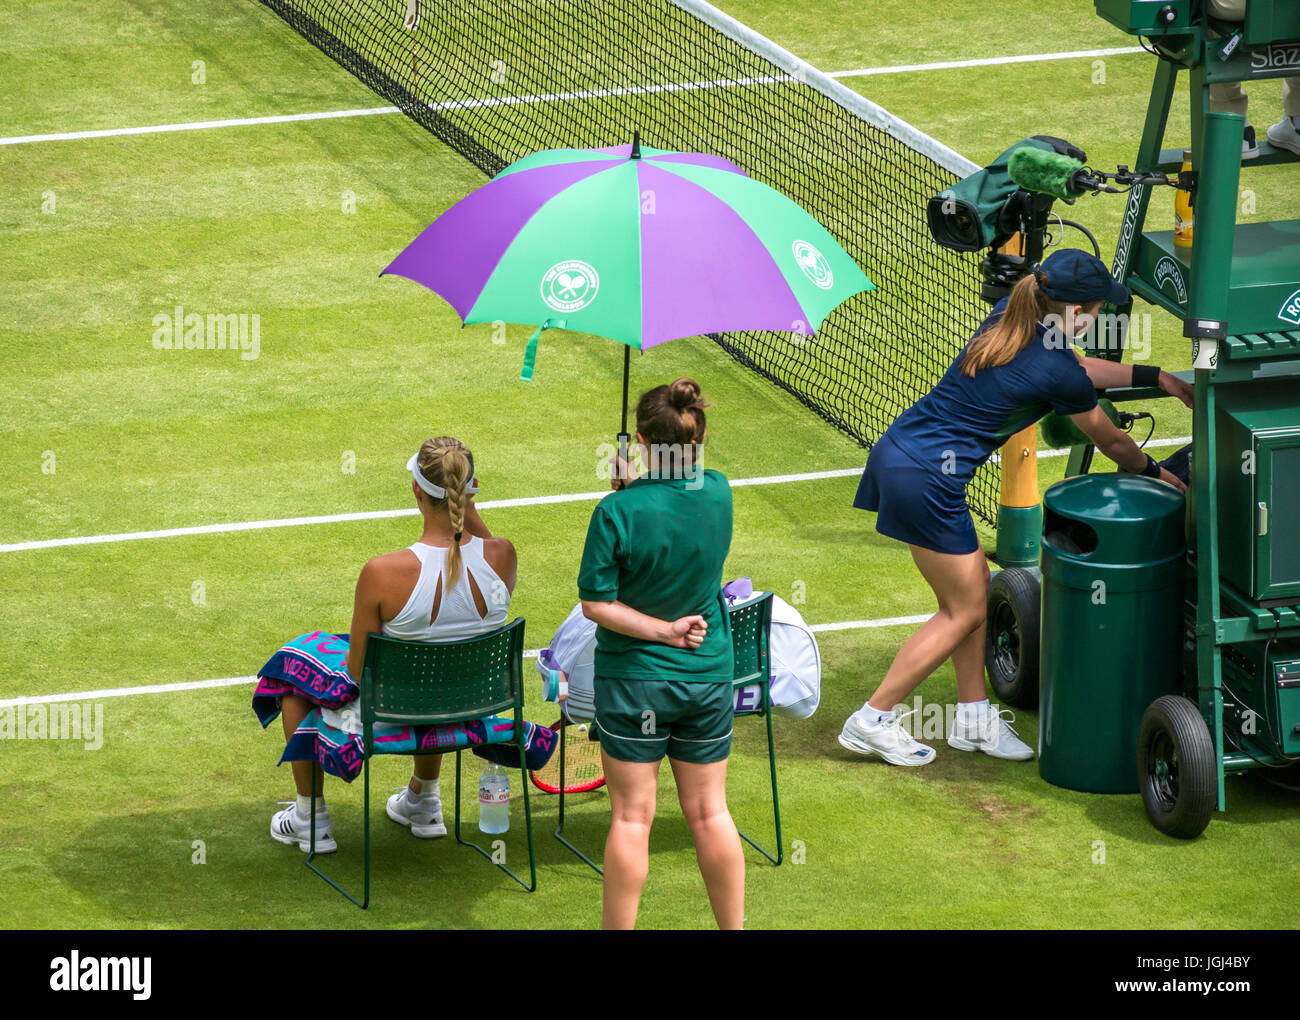 angelique-kerber-with-ground-girl-holdin